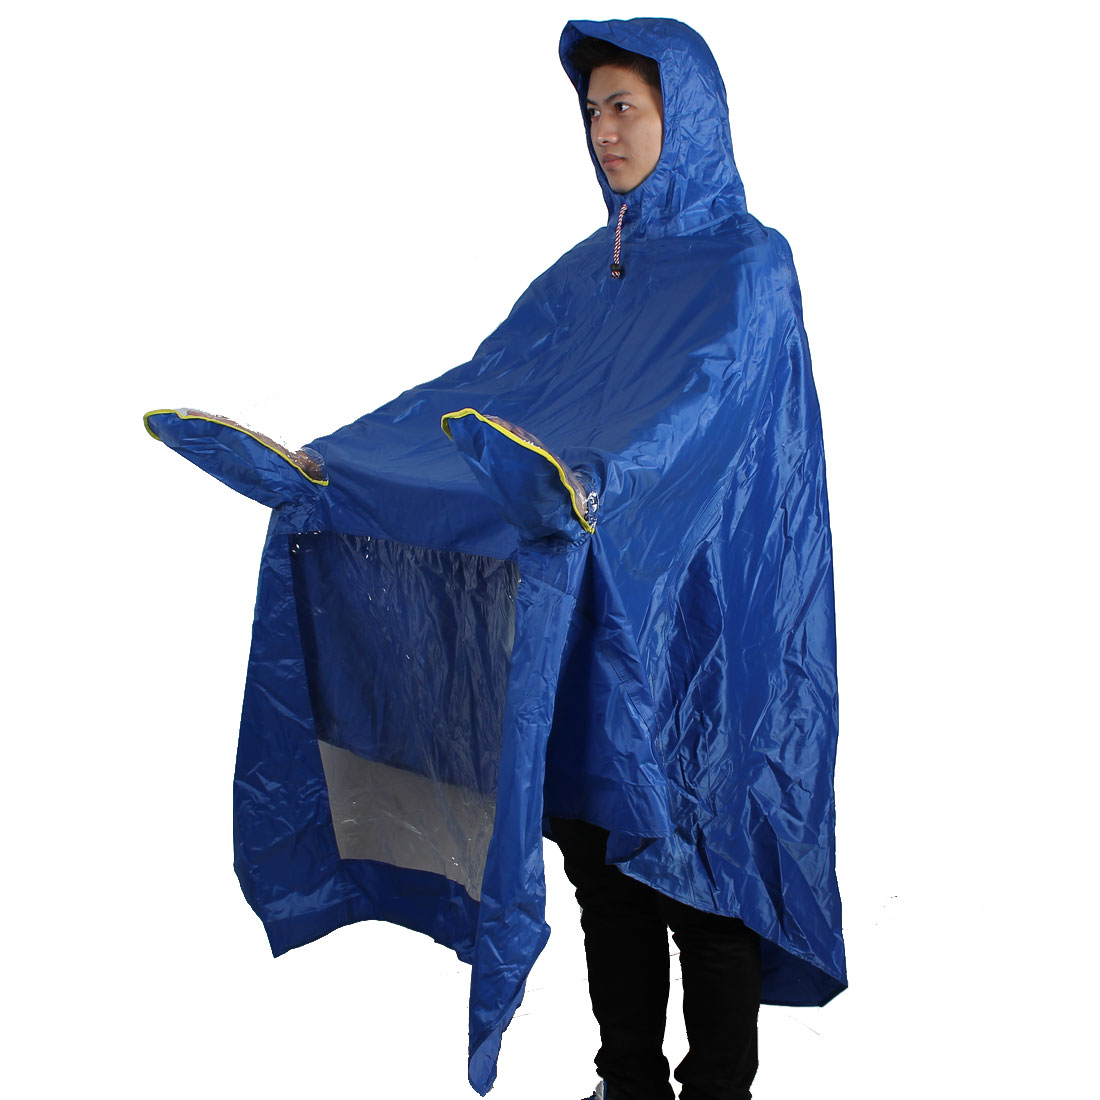 Water Resistant One Person Raincoat Poncho Coat Suit Blue for Motorcycle Bike